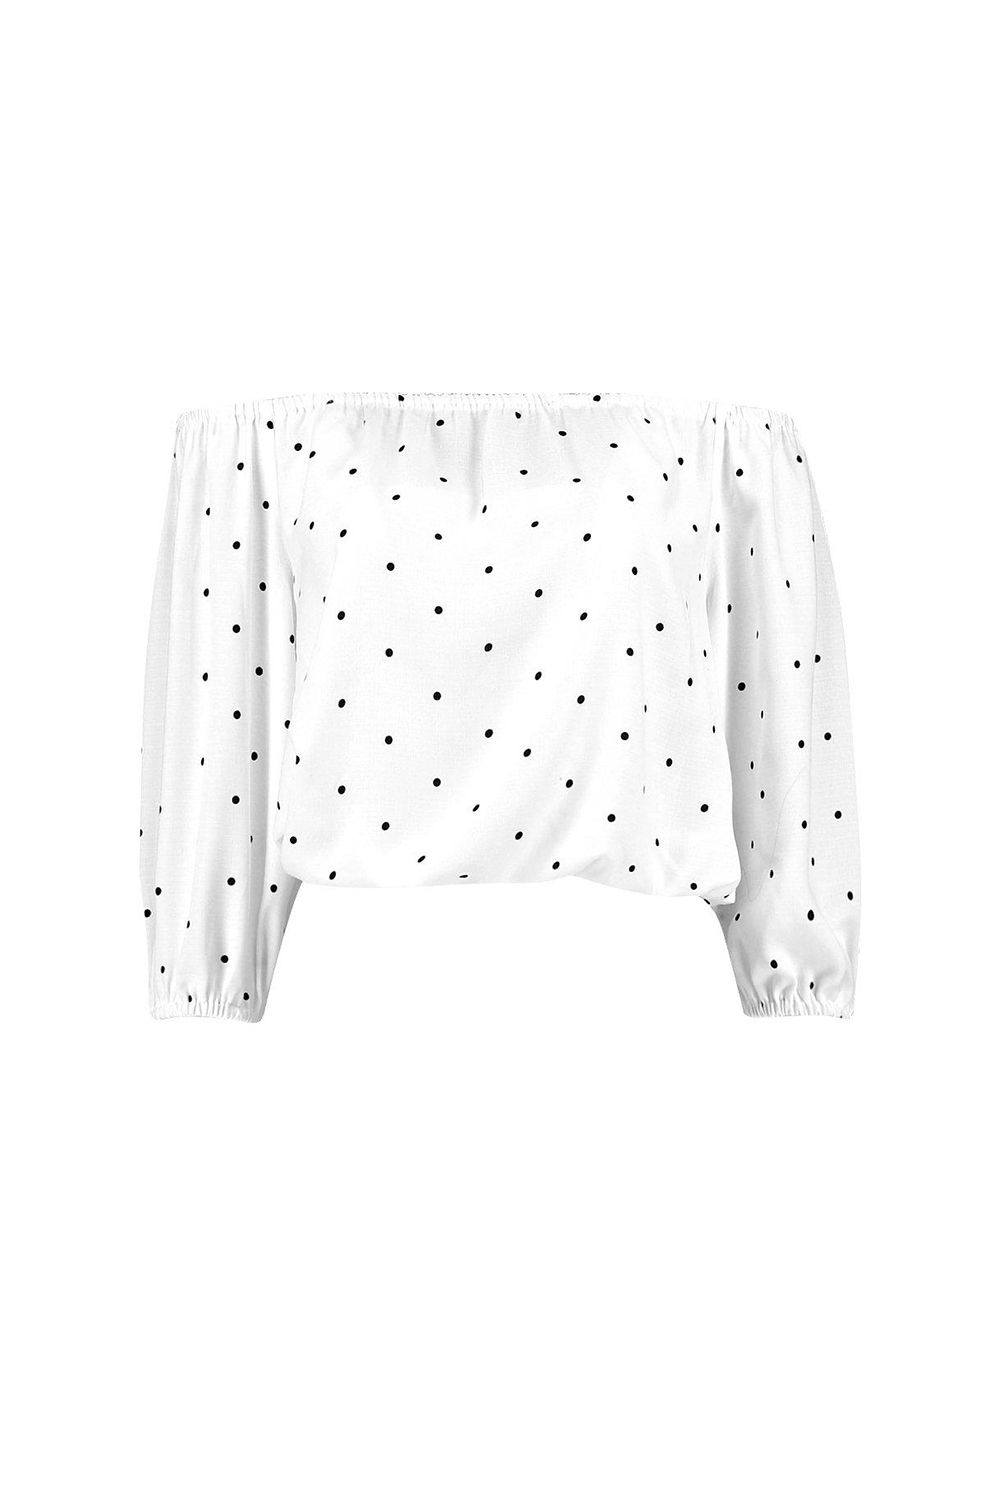 """<p>On the other hand, the sleeves and bodice on this one are blouse-y enough to make raising your arms not excruciating. You could even wear it under a jacket, which is a BFD if you've ever had the neckline ride up uncomfortably around your ears. </p><p>$26, <a href=""""http://rstyle.me/n/btwqk5bqb8f"""" target=""""_blank"""">boohoo.com</a>.</p>"""